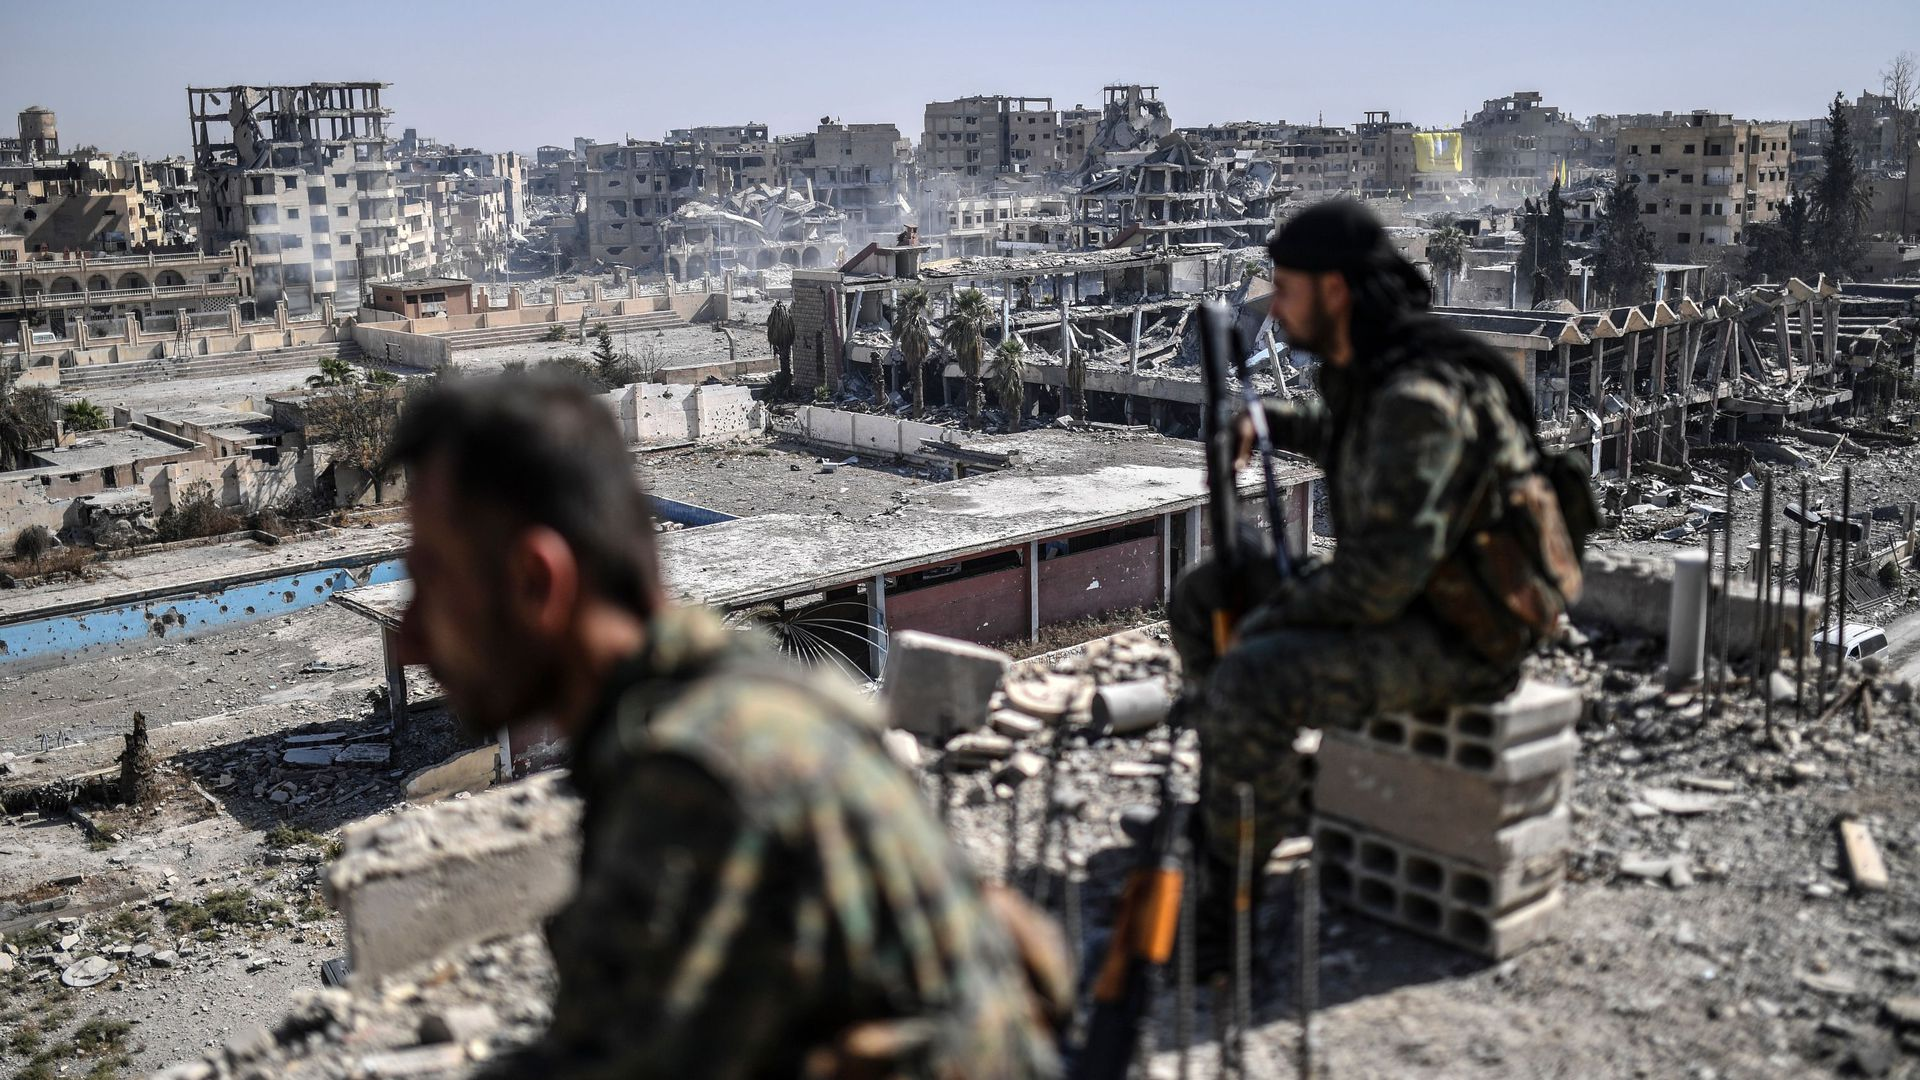 Fighters of the Syrian Democratic Forces (SDF) stand guard on a rooftop.